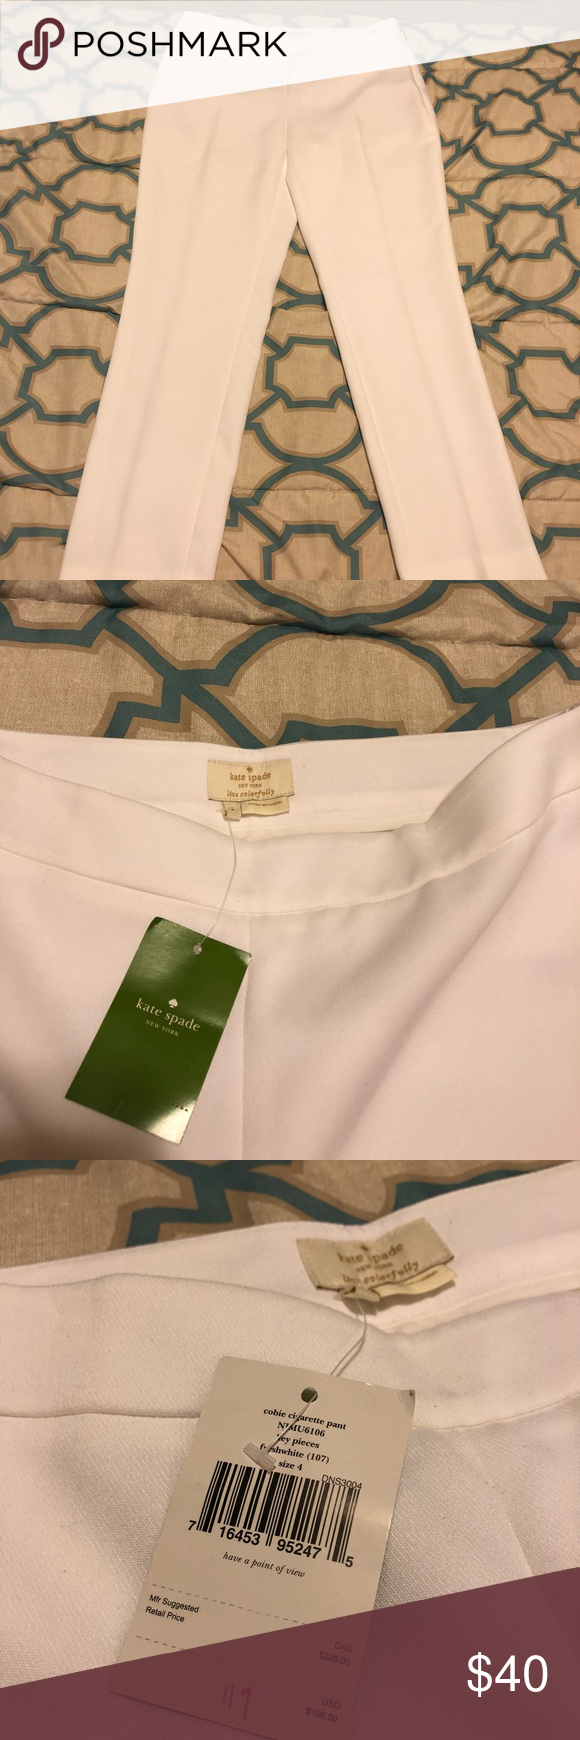 Kate Spade white slacks Kate Spade simple white, comfy slacks with side zipper.  New with tags, never been worn! kate spade Pants #whiteslacks Kate Spade white slacks Kate Spade simple white, comfy slacks with side zipper.  New with tags, never been worn! kate spade Pants #whiteslacks Kate Spade white slacks Kate Spade simple white, comfy slacks with side zipper.  New with tags, never been worn! kate spade Pants #whiteslacks Kate Spade white slacks Kate Spade simple white, comfy slacks with side #whiteslacks